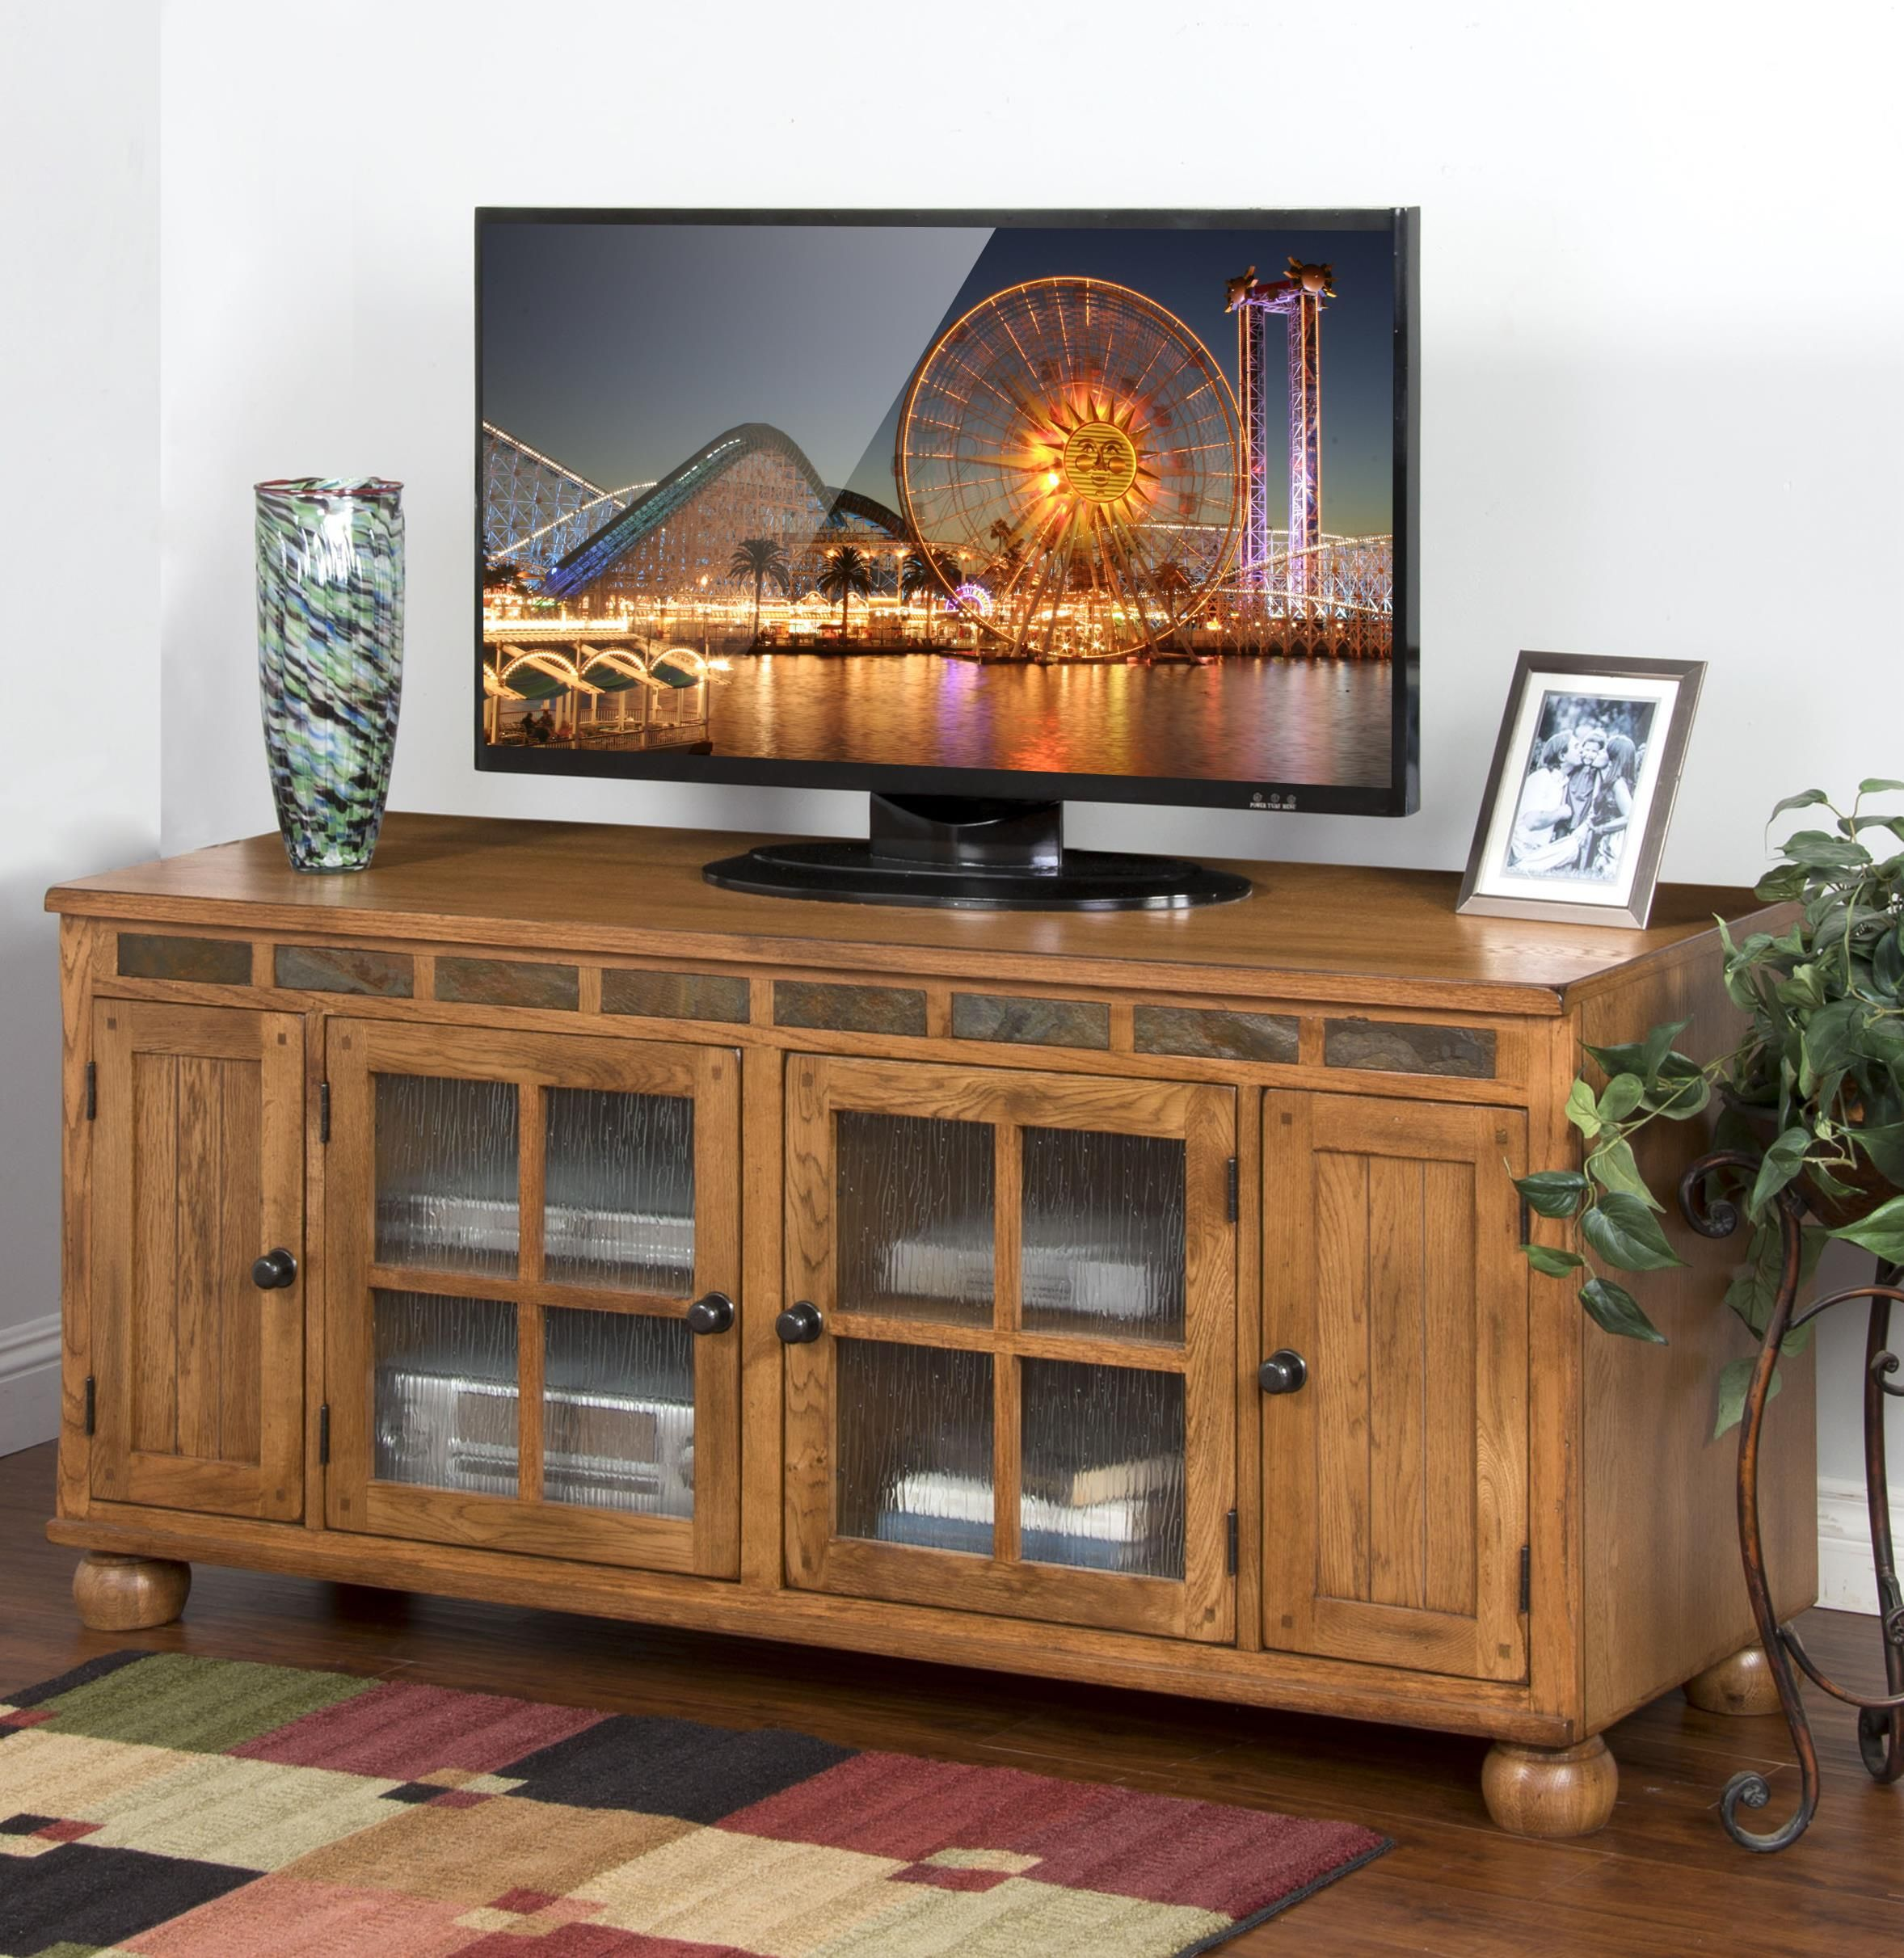 Home interior design tv console pin by kim lewis on for the home  pinterest  consoles sunnies and